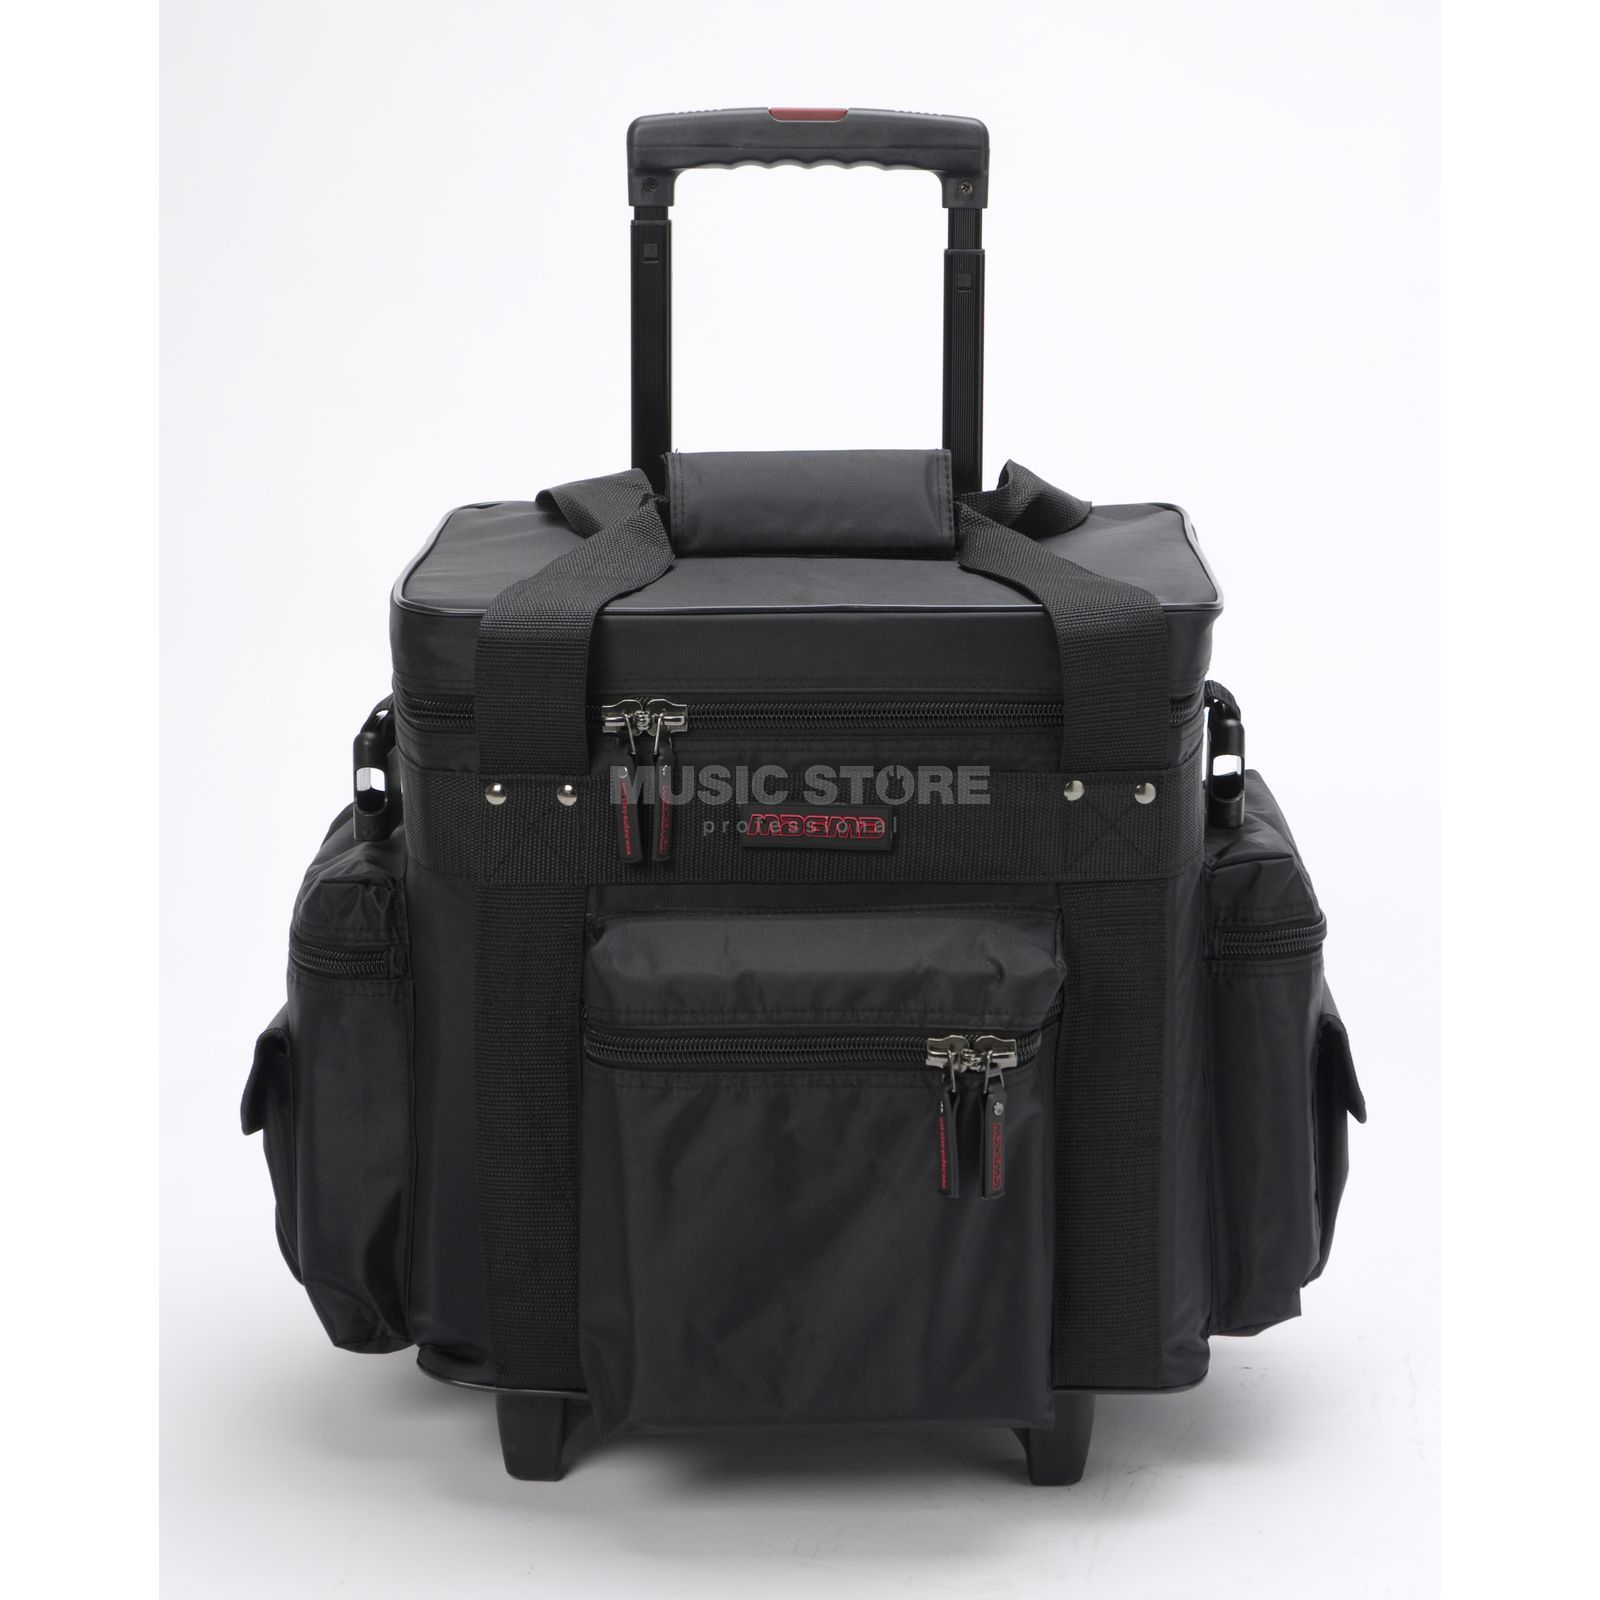 Magma LP-Bag 100 Trolley black/black  Image du produit